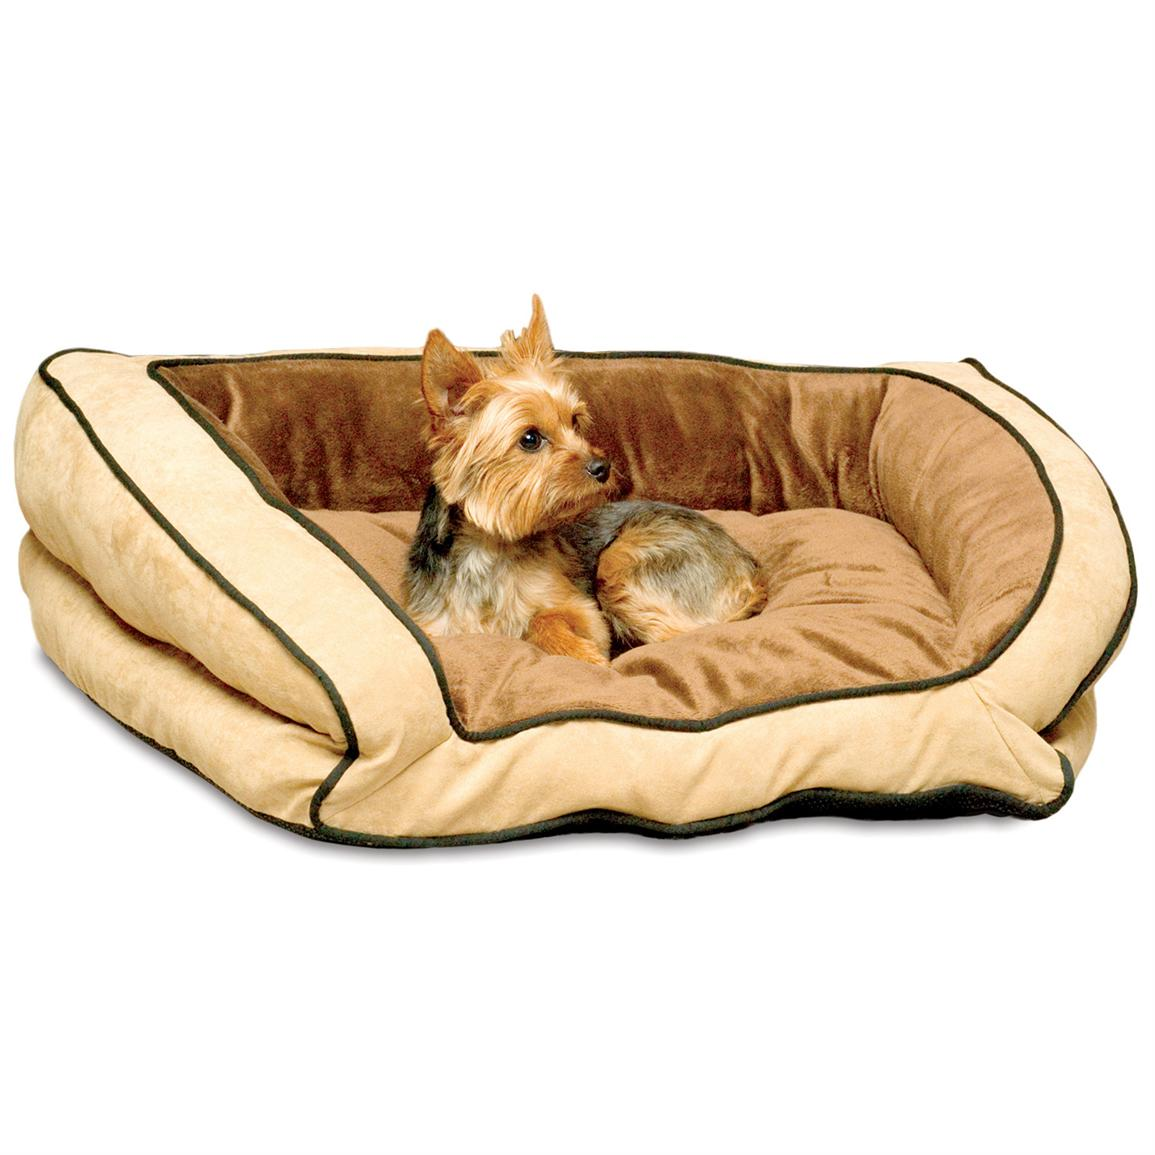 K&H™ Pet Products Bolster Couch, Mocha / Tan - Small